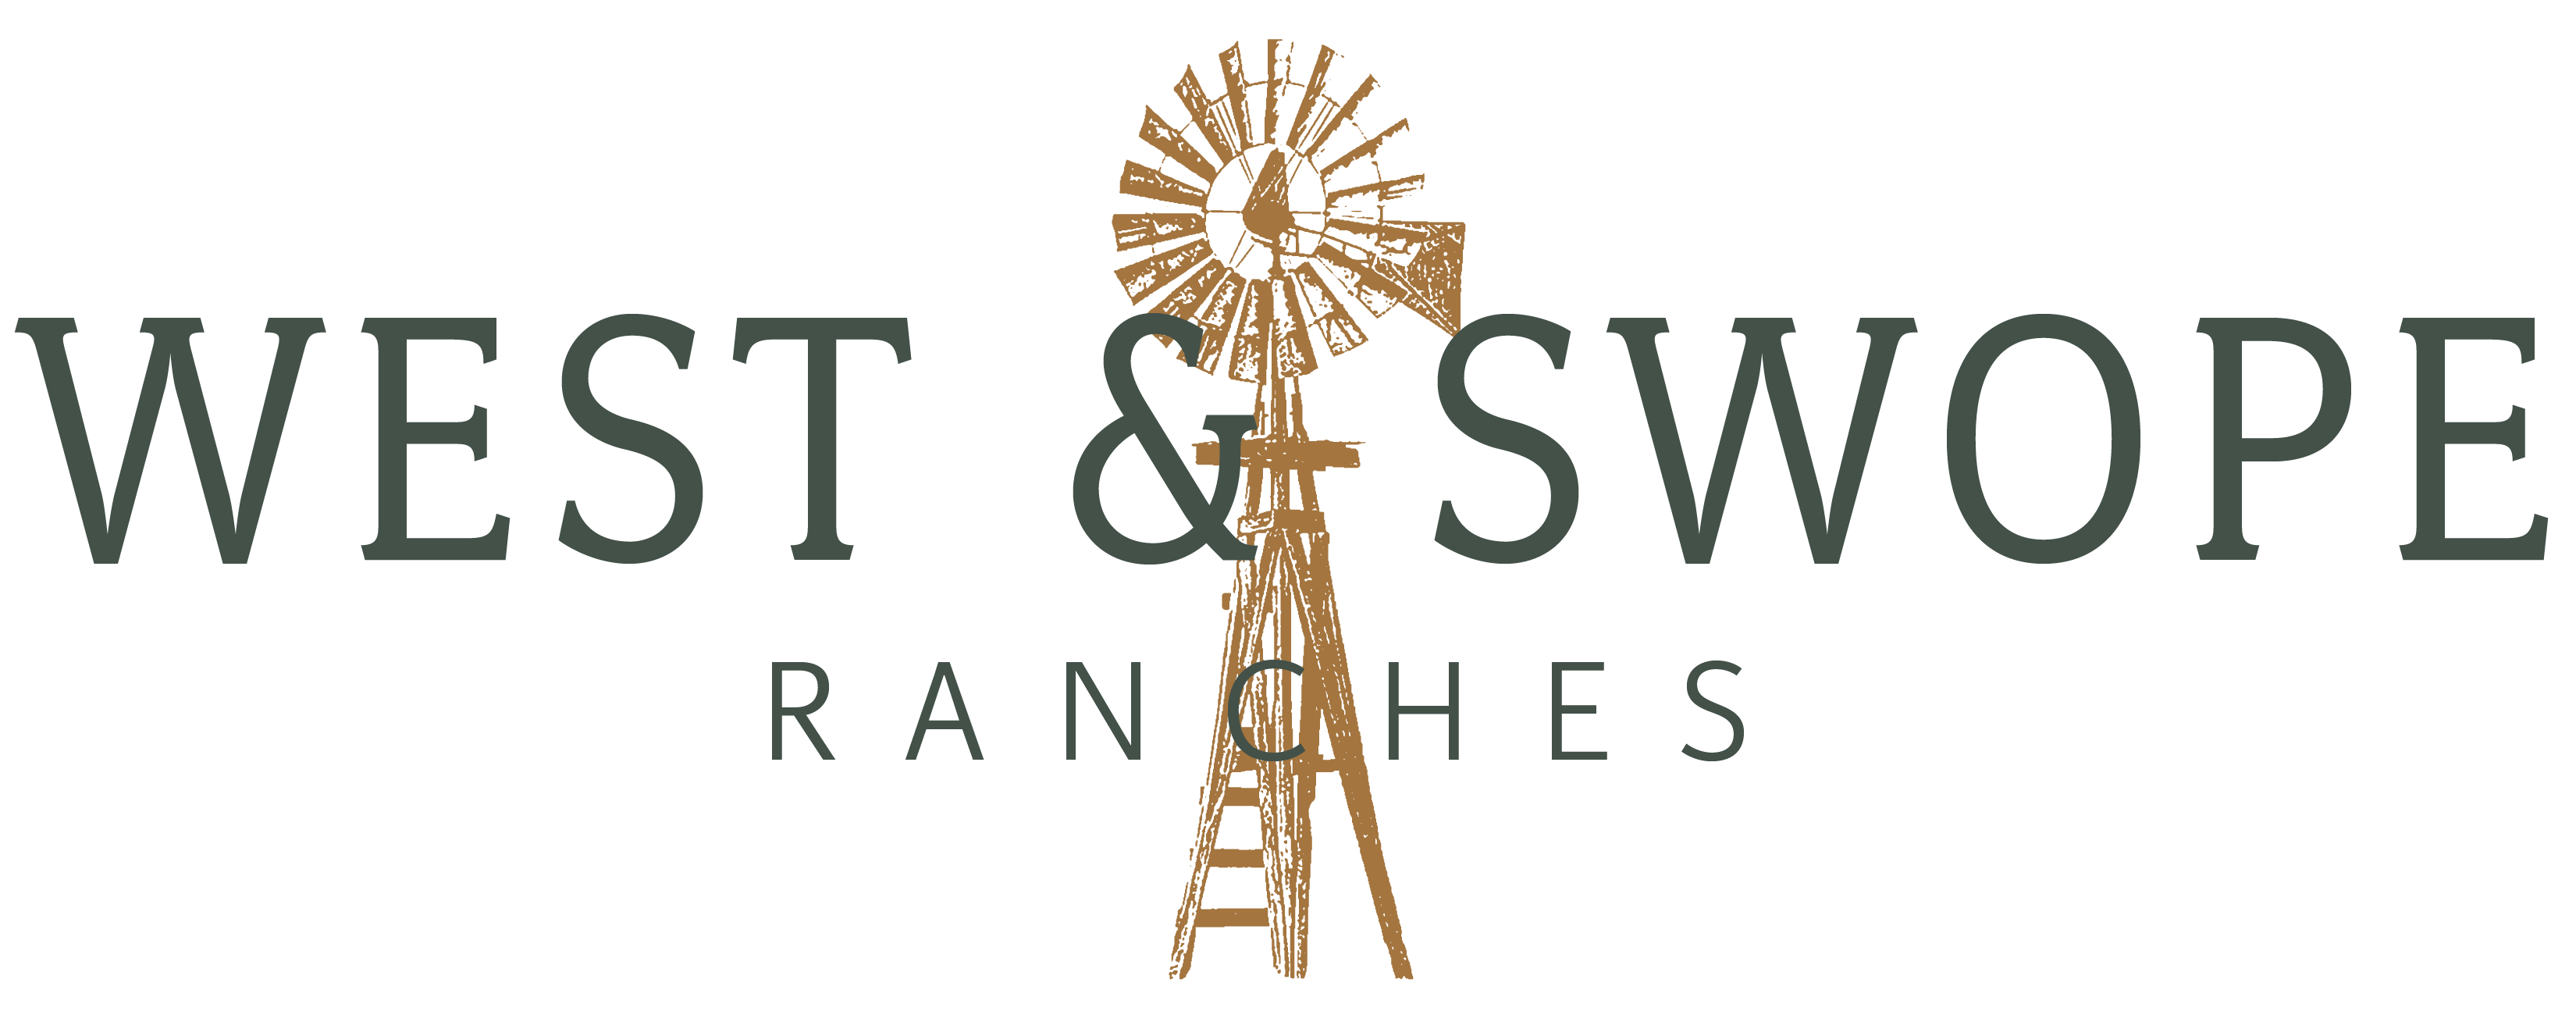 West & Swope Ranches